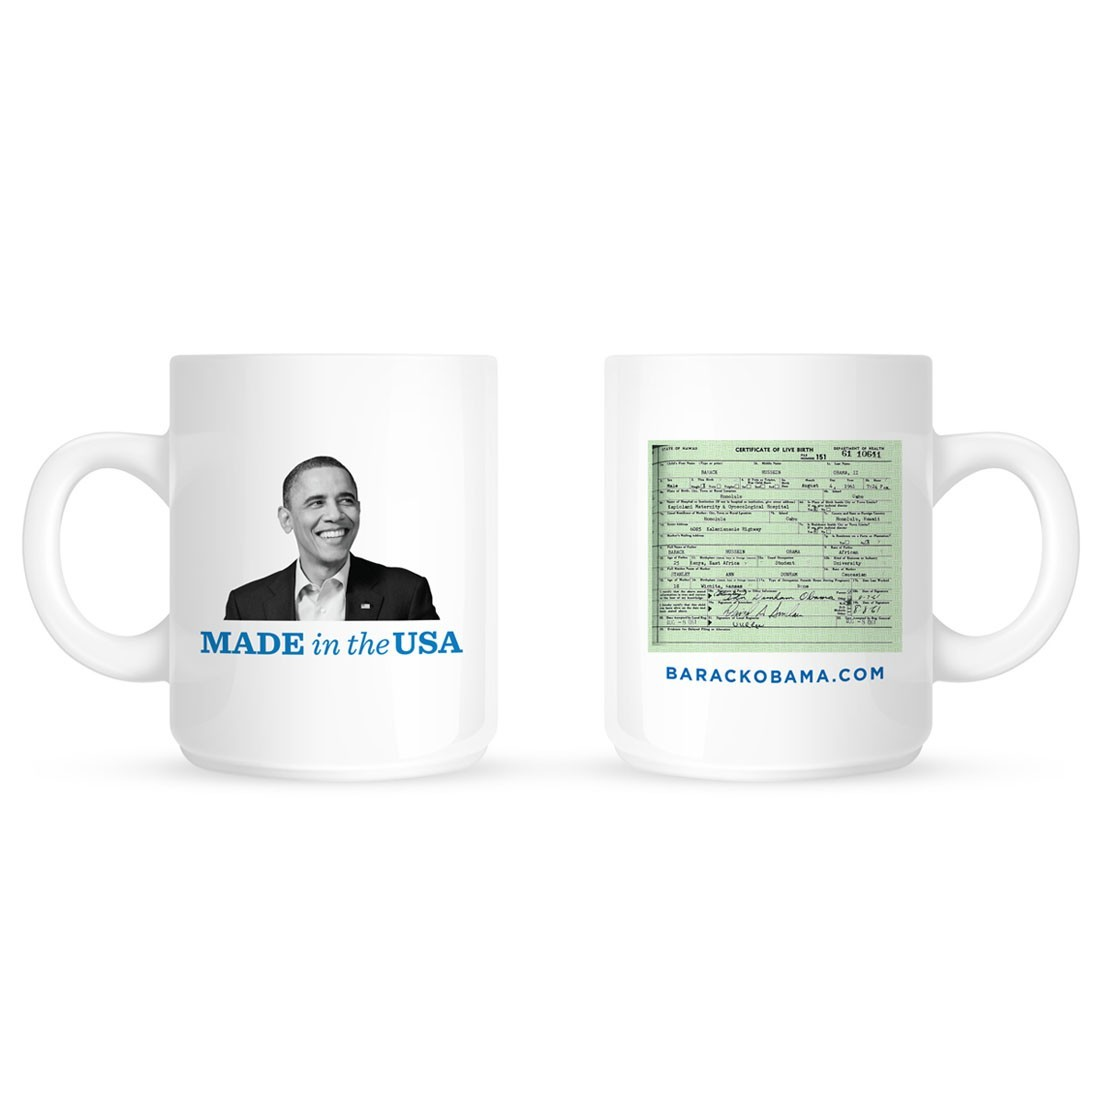 (via Obama for America | 2012 | Store | Made In The USA Mug - Kitchen - Home & Outdoors) Yo this is mad ballsy, O for A. I like.